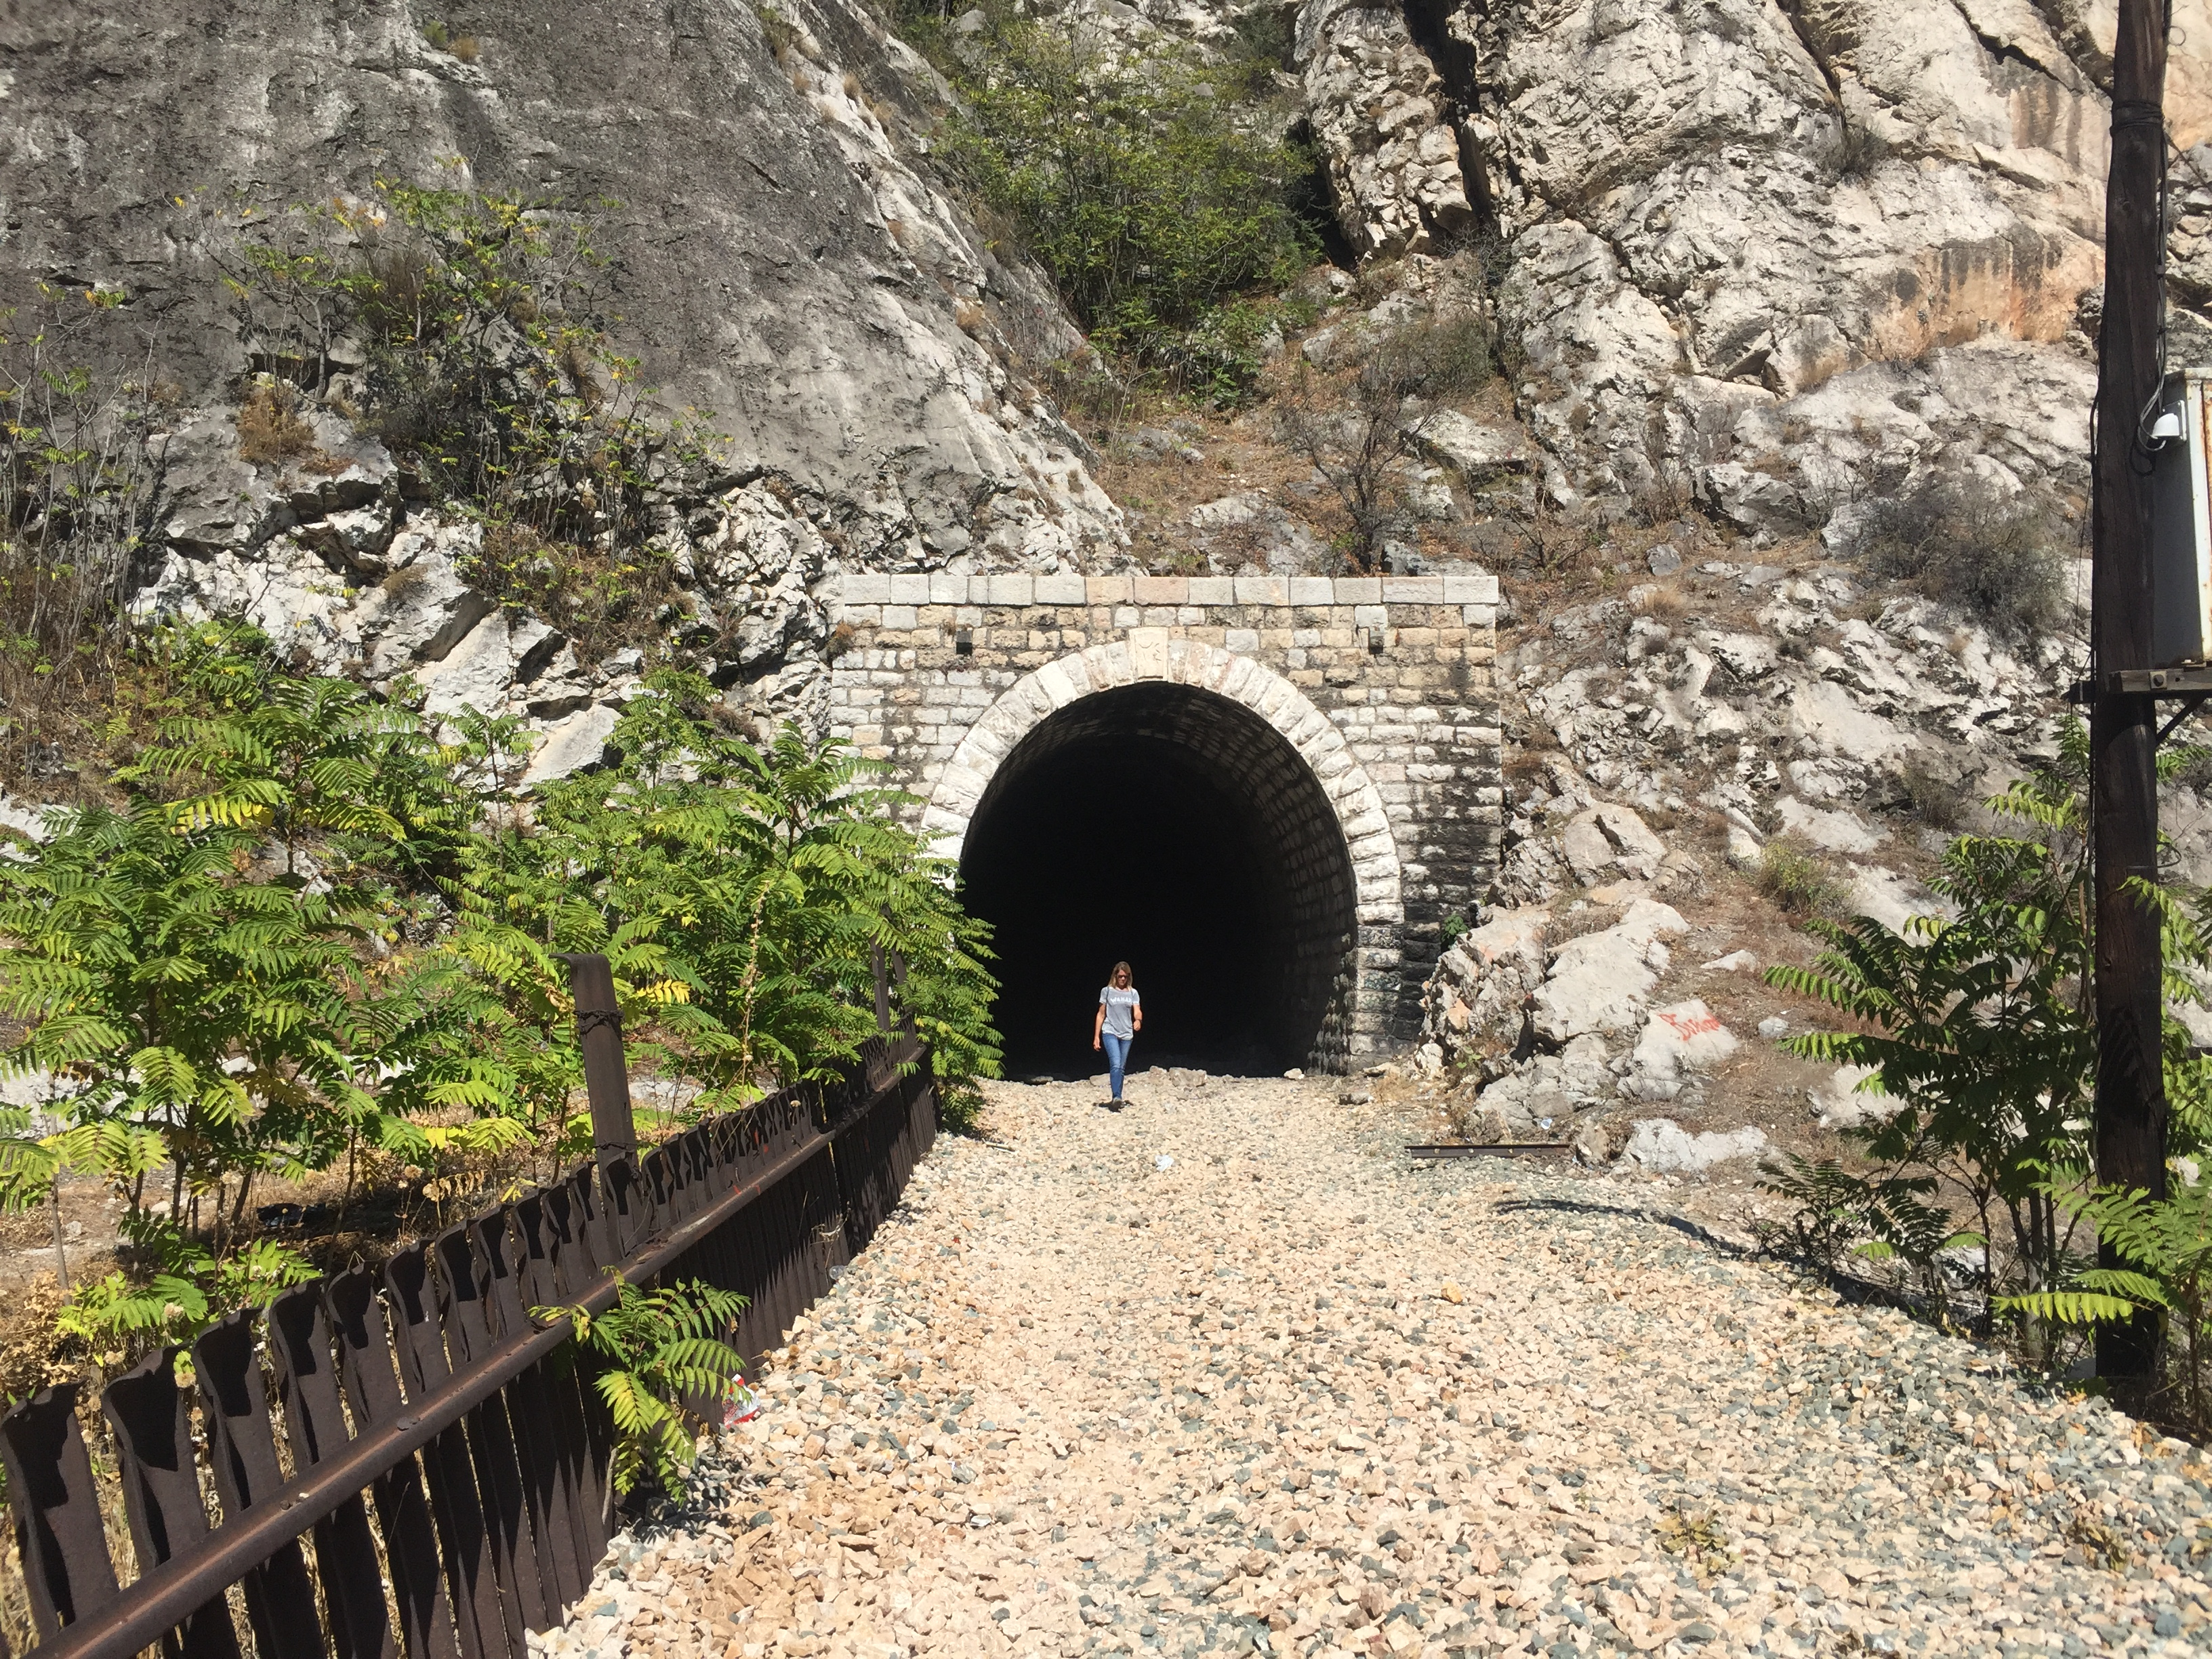 Ruth emerges from the railway tunnel